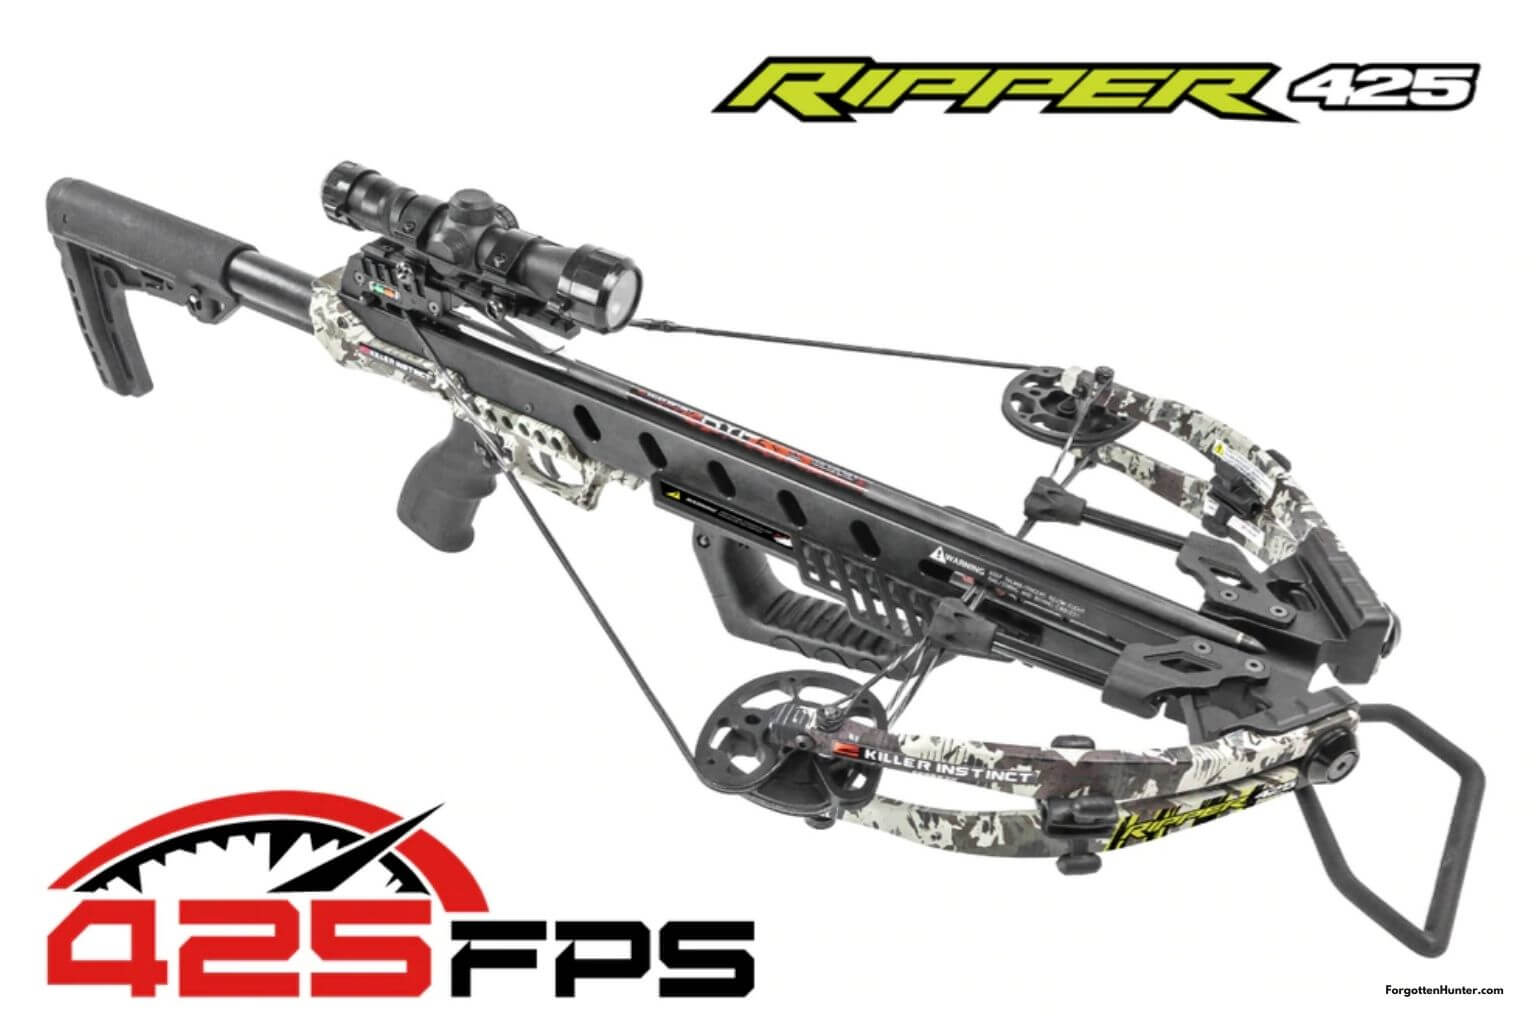 Killer Instinct Ripper 425 Review - Fast, Accurate and Adjustable Crossbow